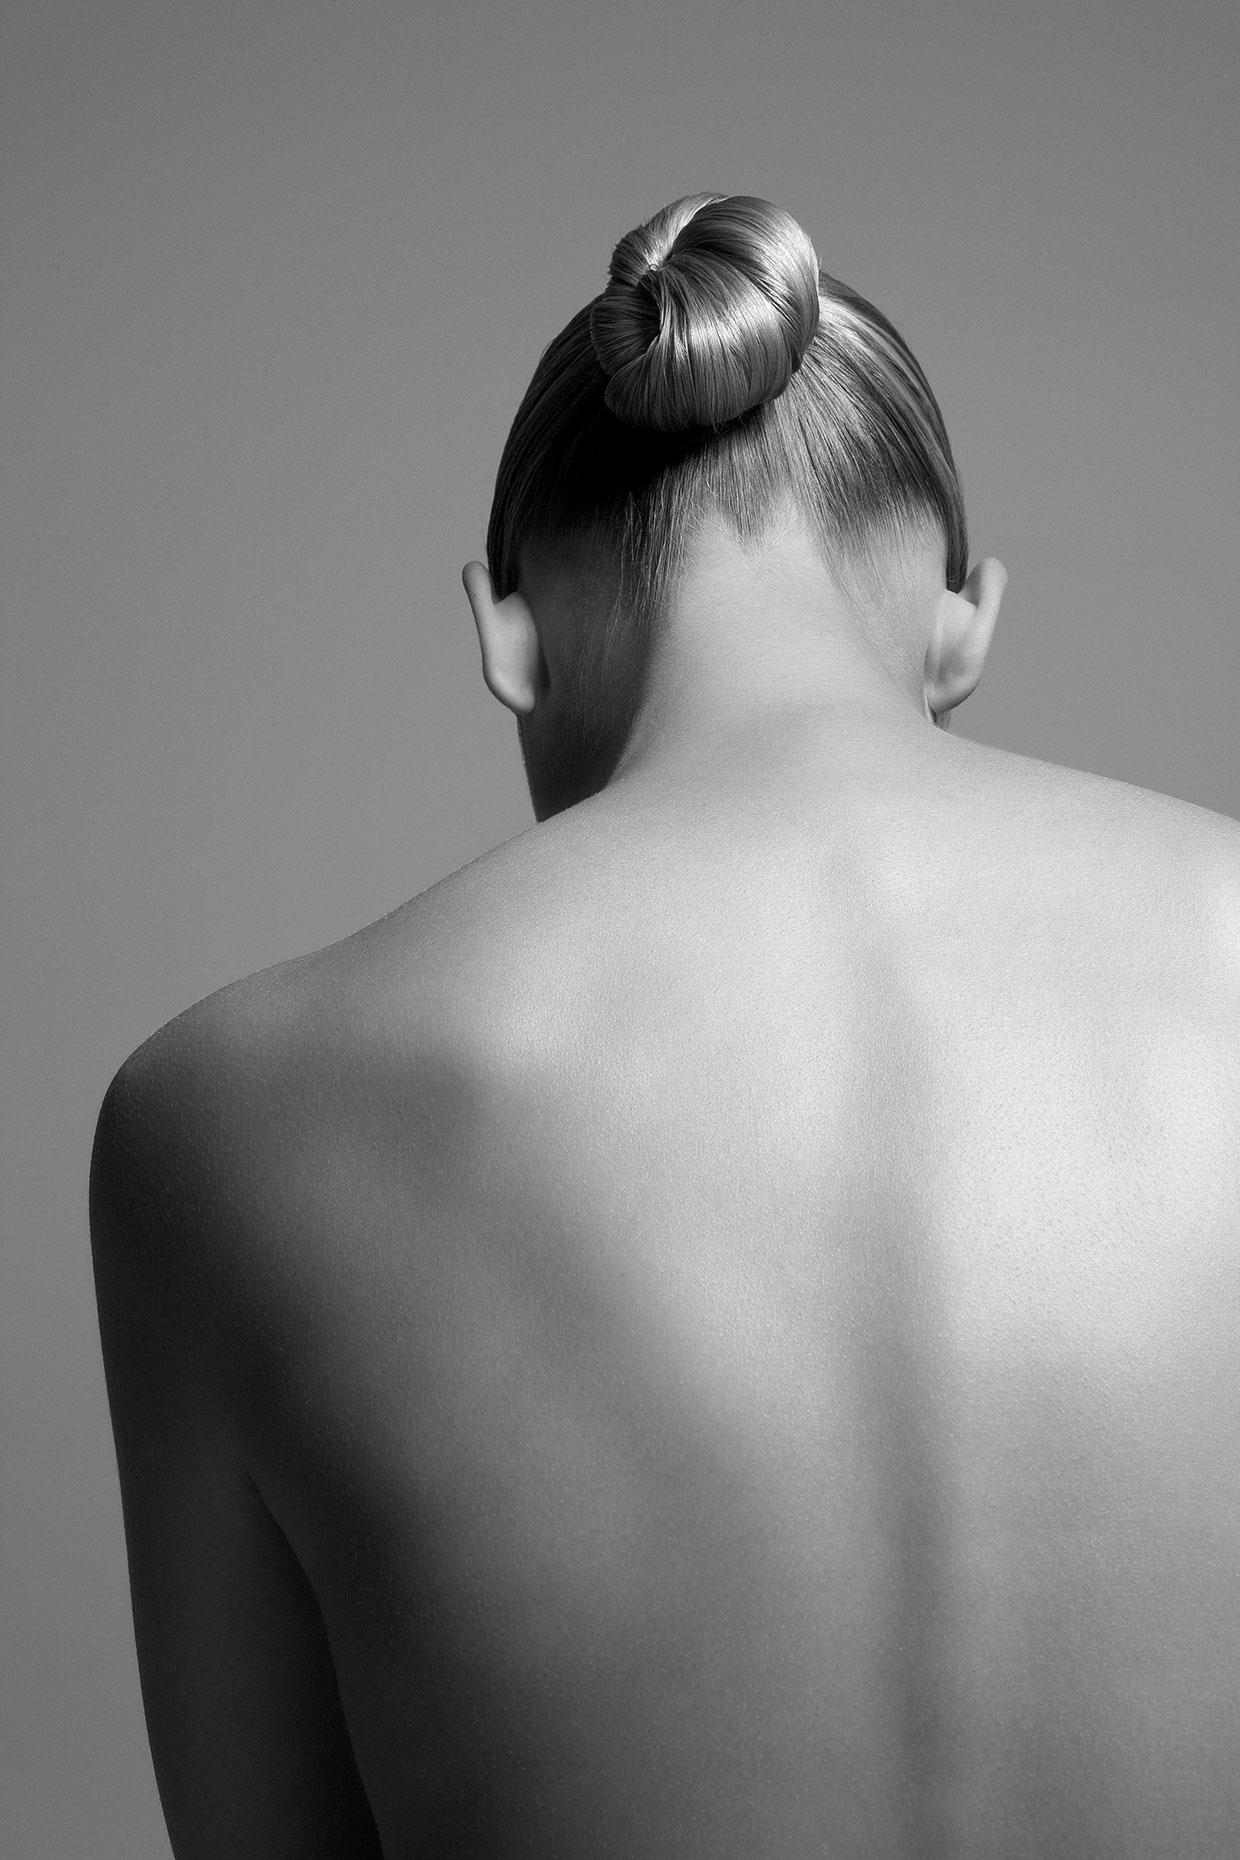 Naked young woman with back to camera, portrait.